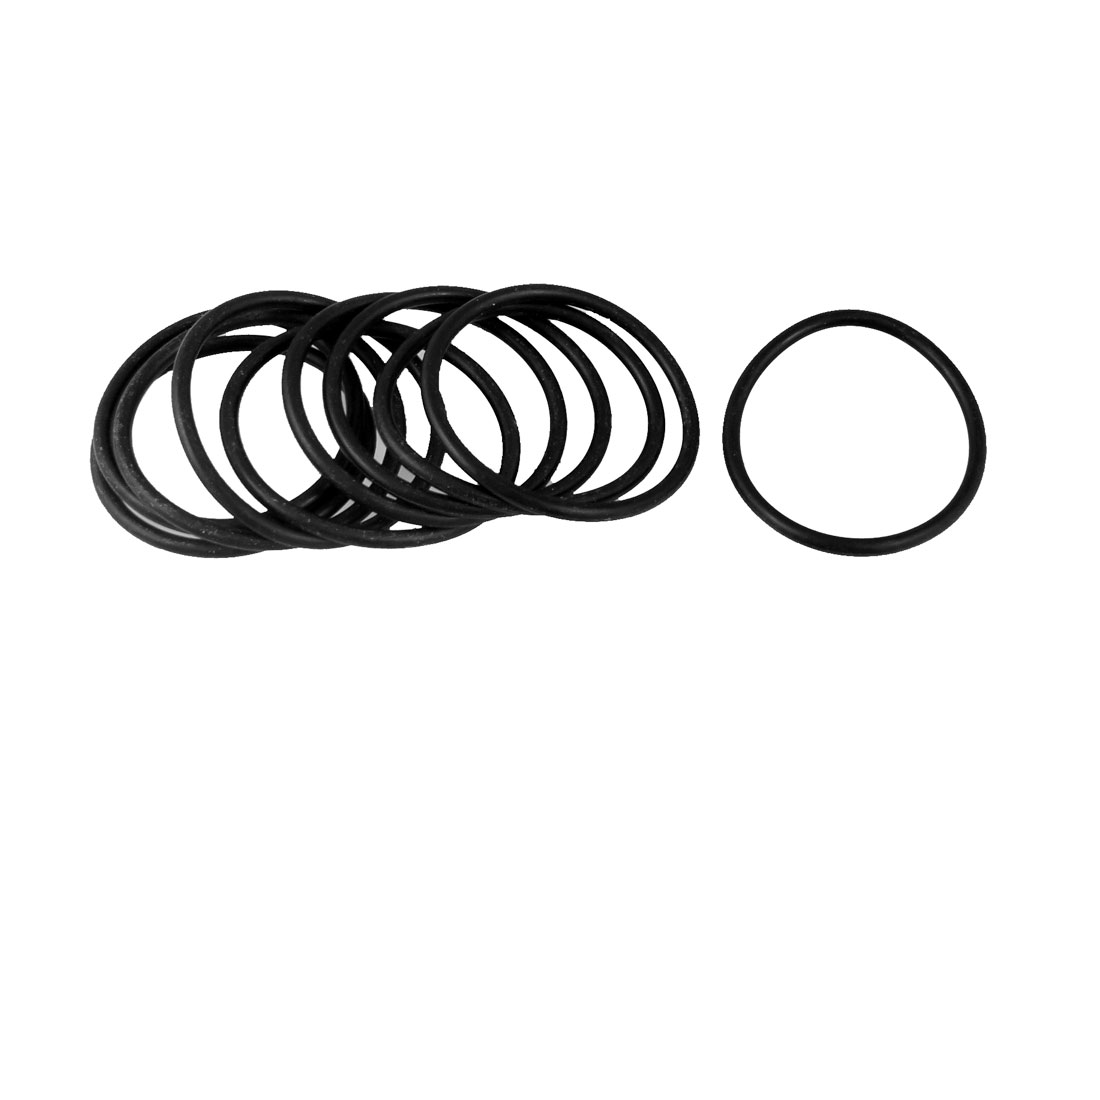 38.7mm x 2.65mm x 33.4mm Rubber Sealing Oil Filter O Rings Gaskets 5 Pcs